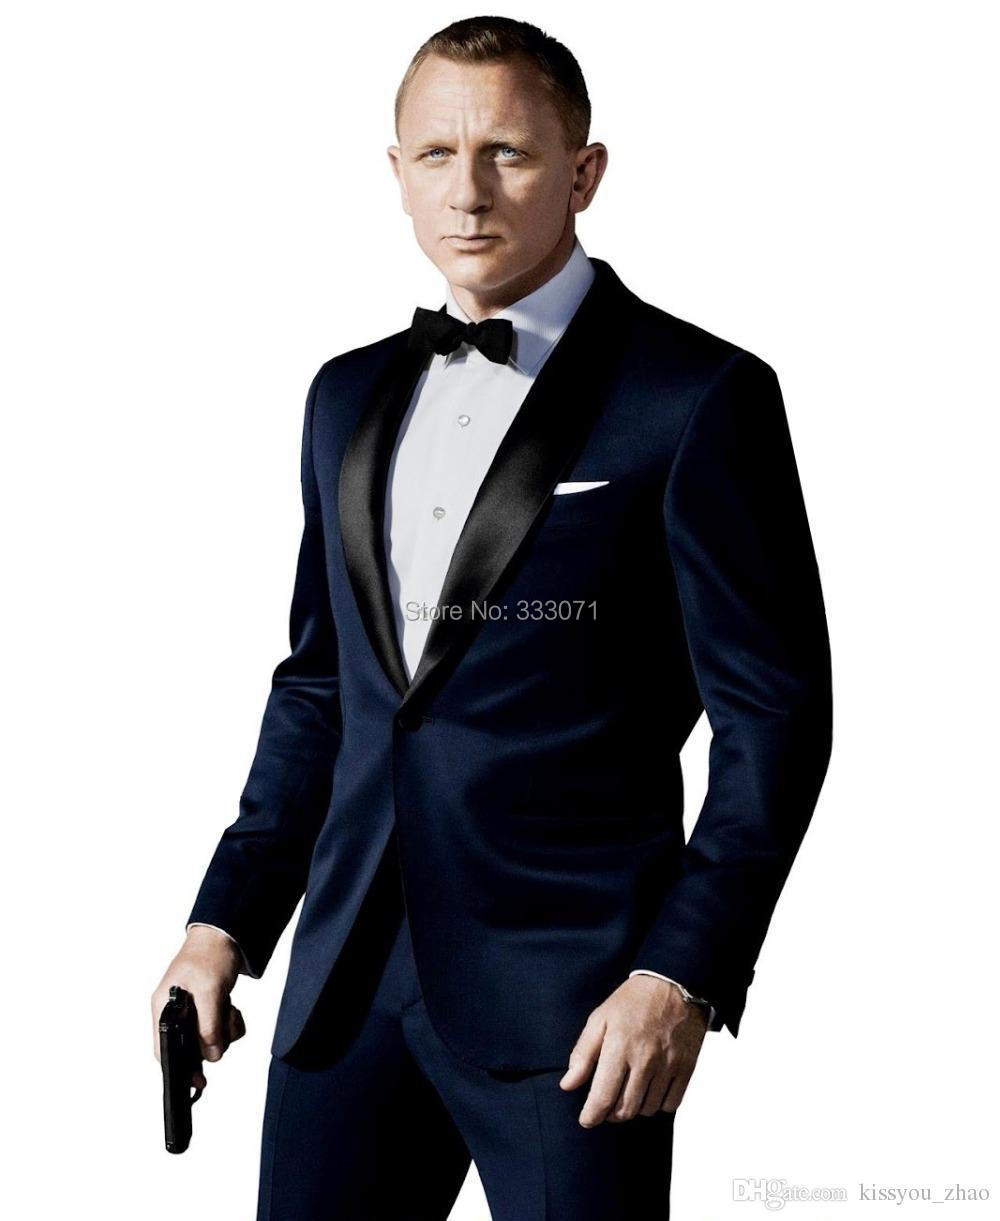 Aliexpress.com : Buy tailor made 2015 Dinner Groom Tuxedos Best ...